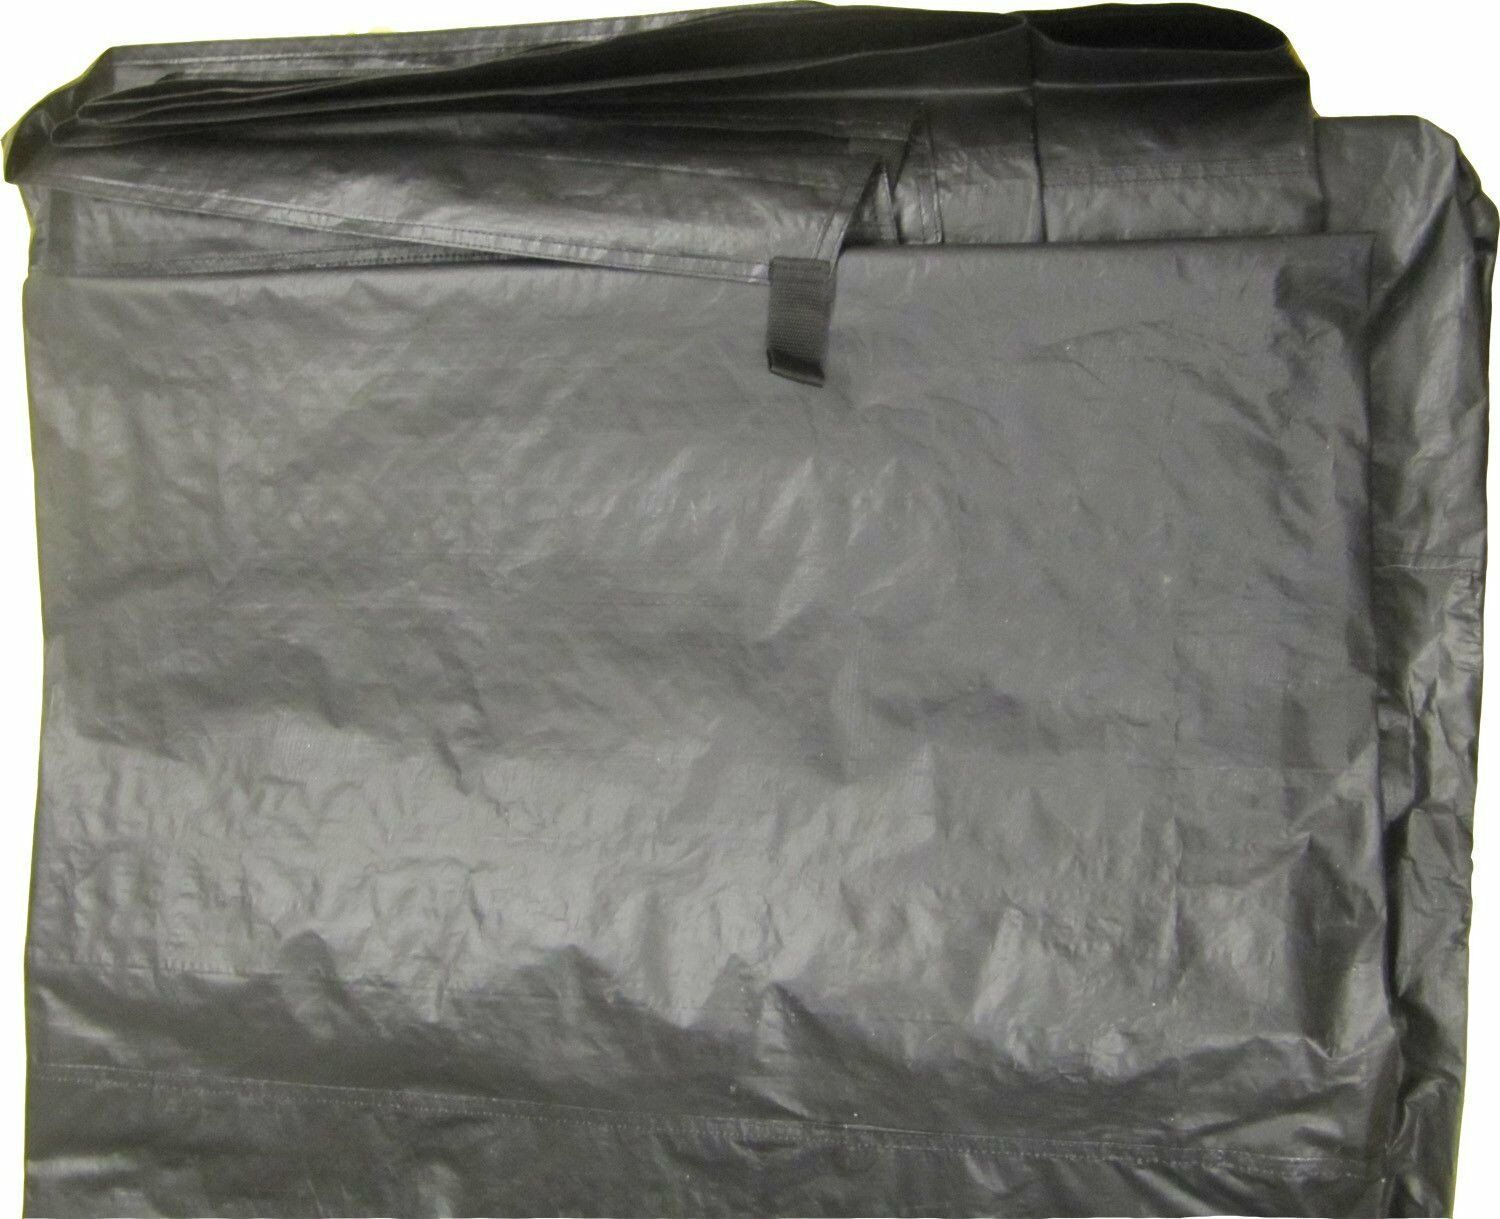 TENT FOOTPRINT GROUNDSHEET 4.7M X 3.2M - FOR TENTS CARAVAN & CAMPER VAN AWNINGS